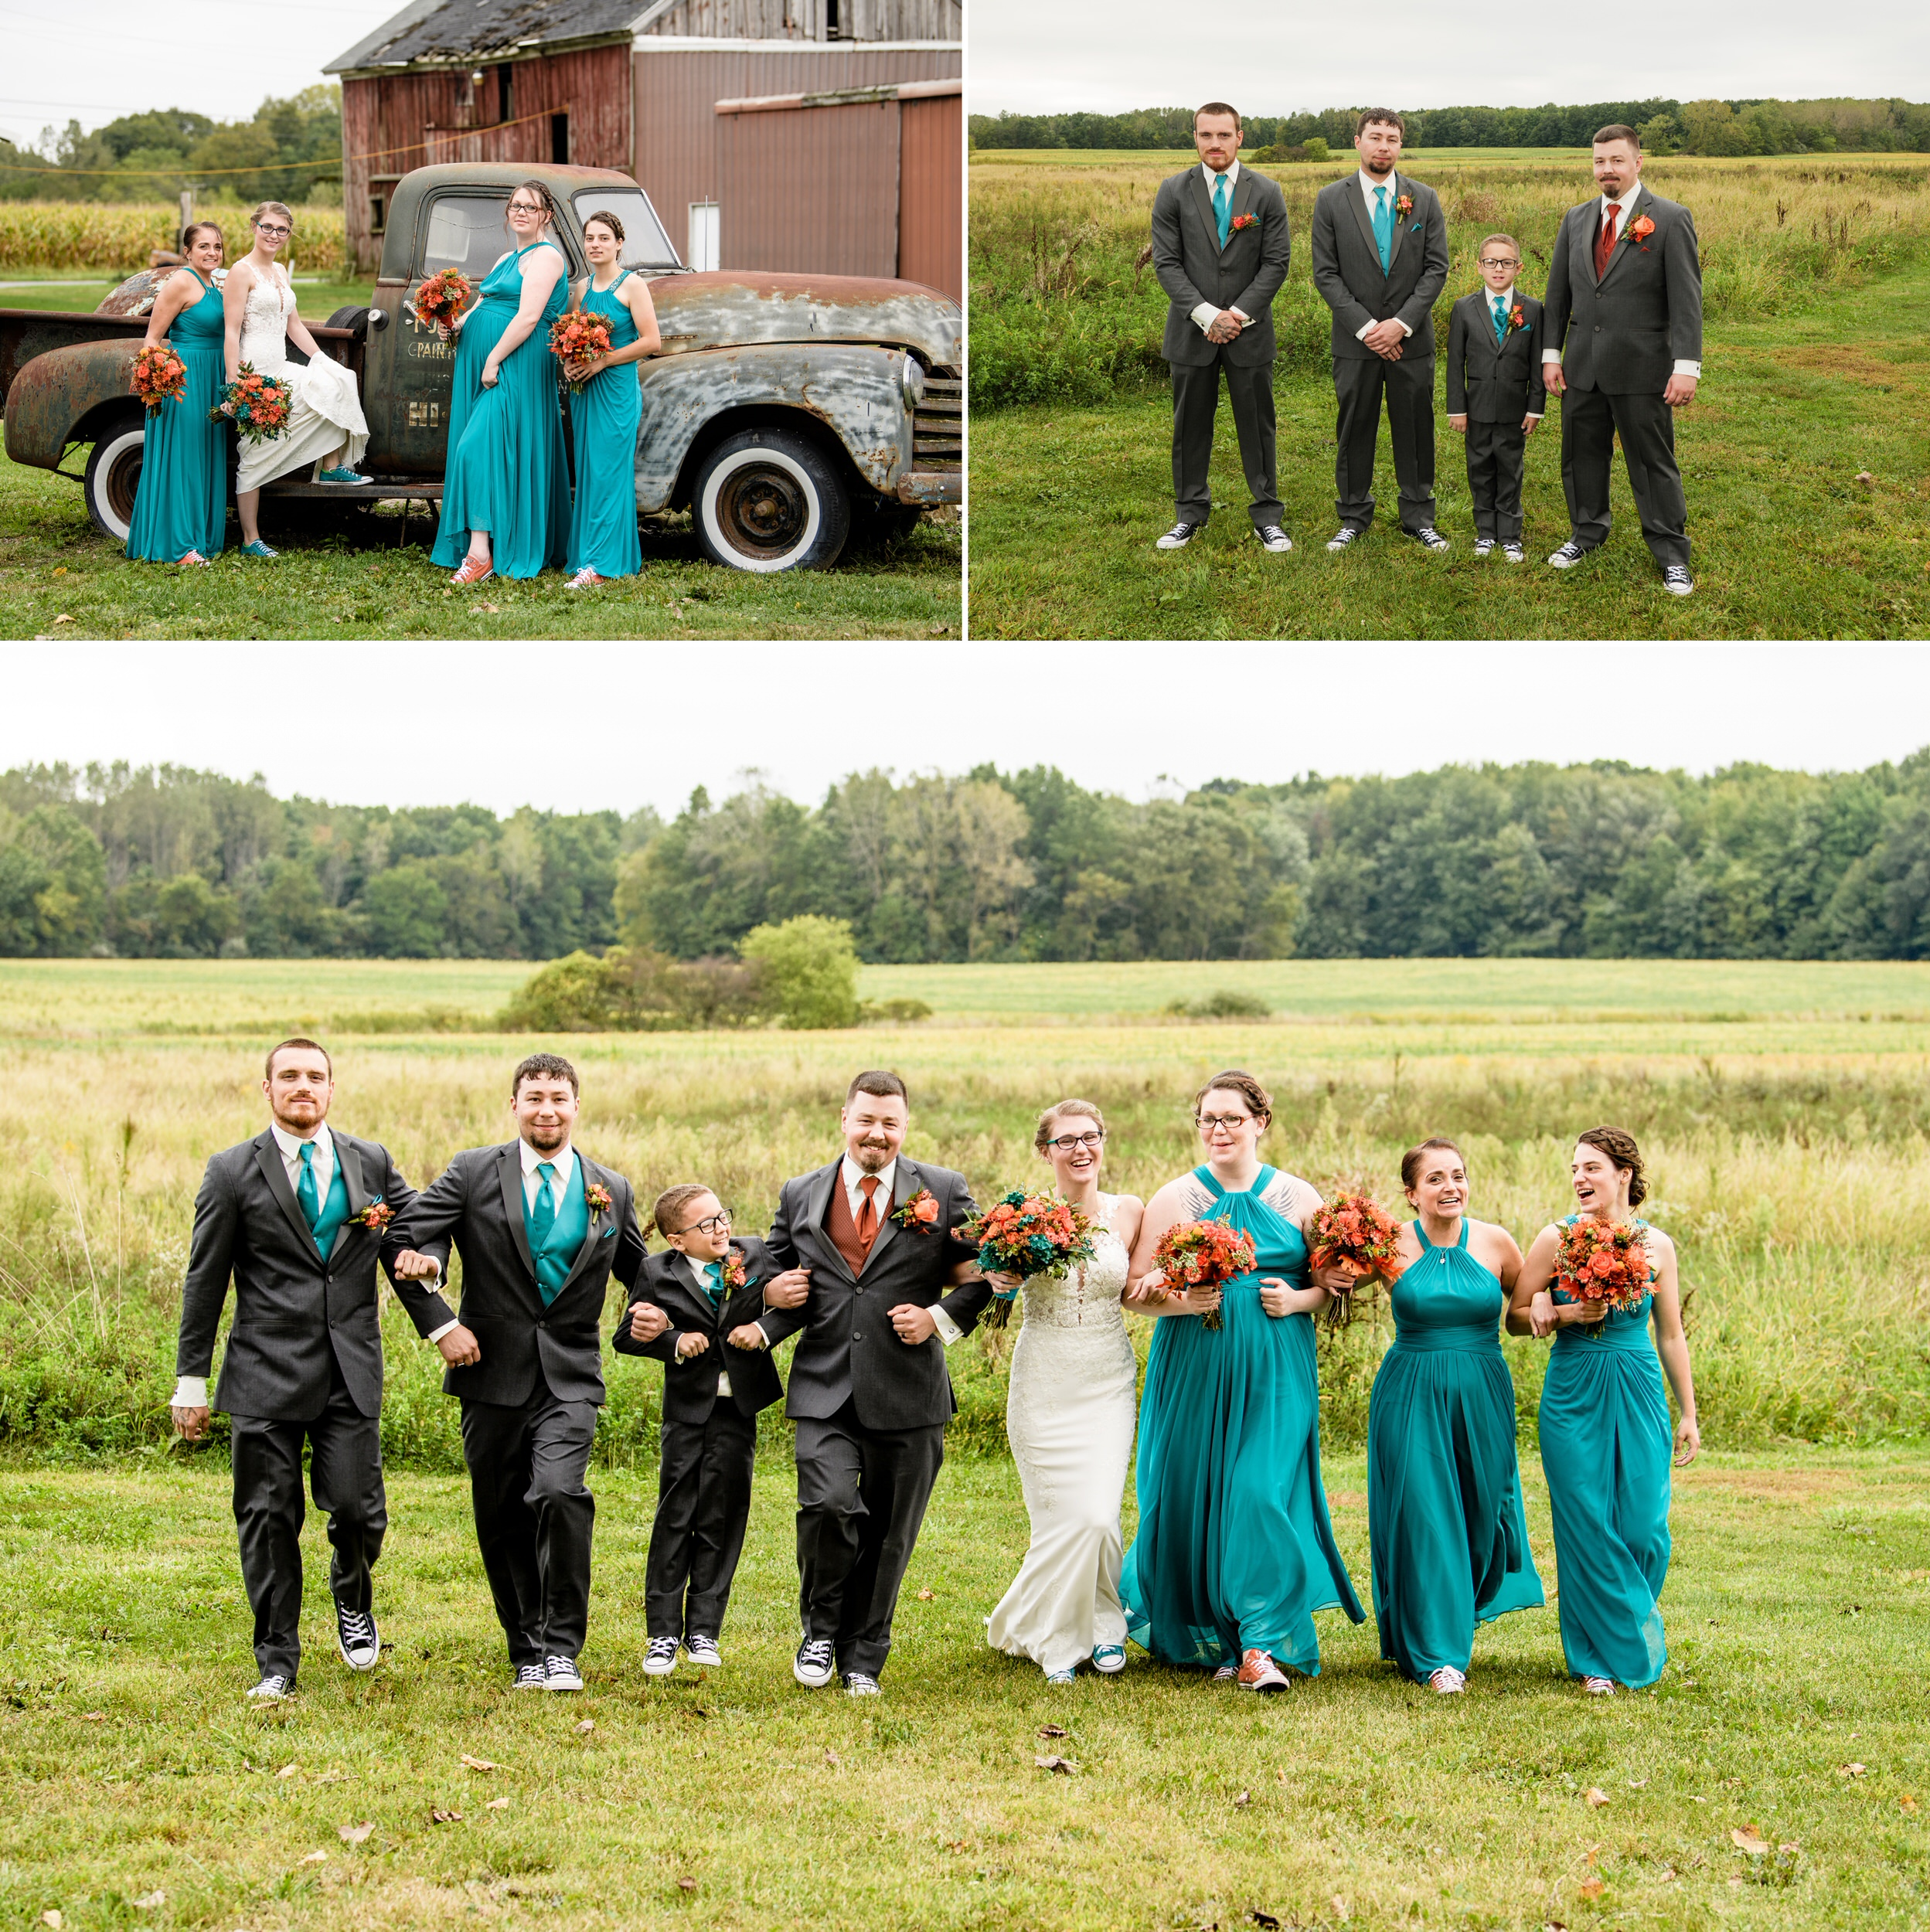 Wedding party photos on the grounds of the winery in Valparaiso, Indiana.